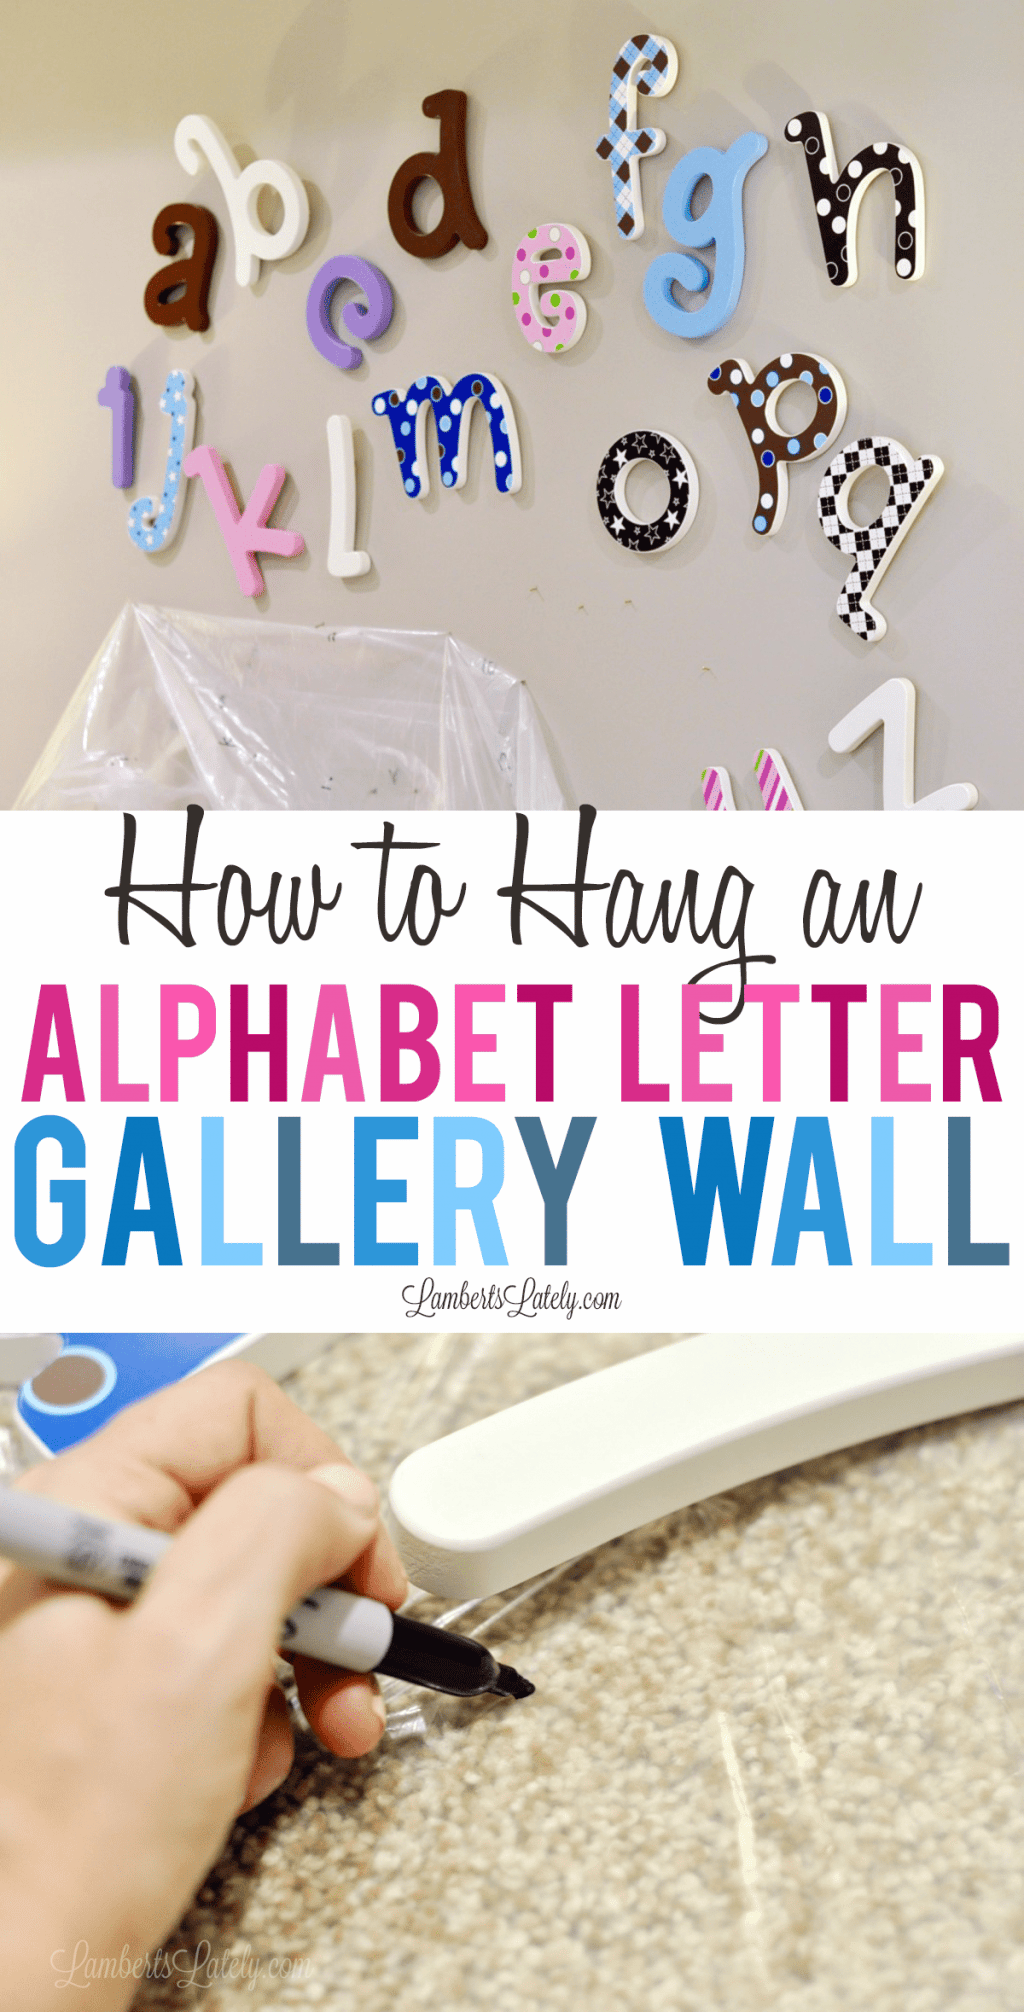 How to Hang an Alphabet Letter Gallery Wall - everything from frame layout to to tips on how to use a drop cloth as a template.  Good post for following the right way to do this DIY!